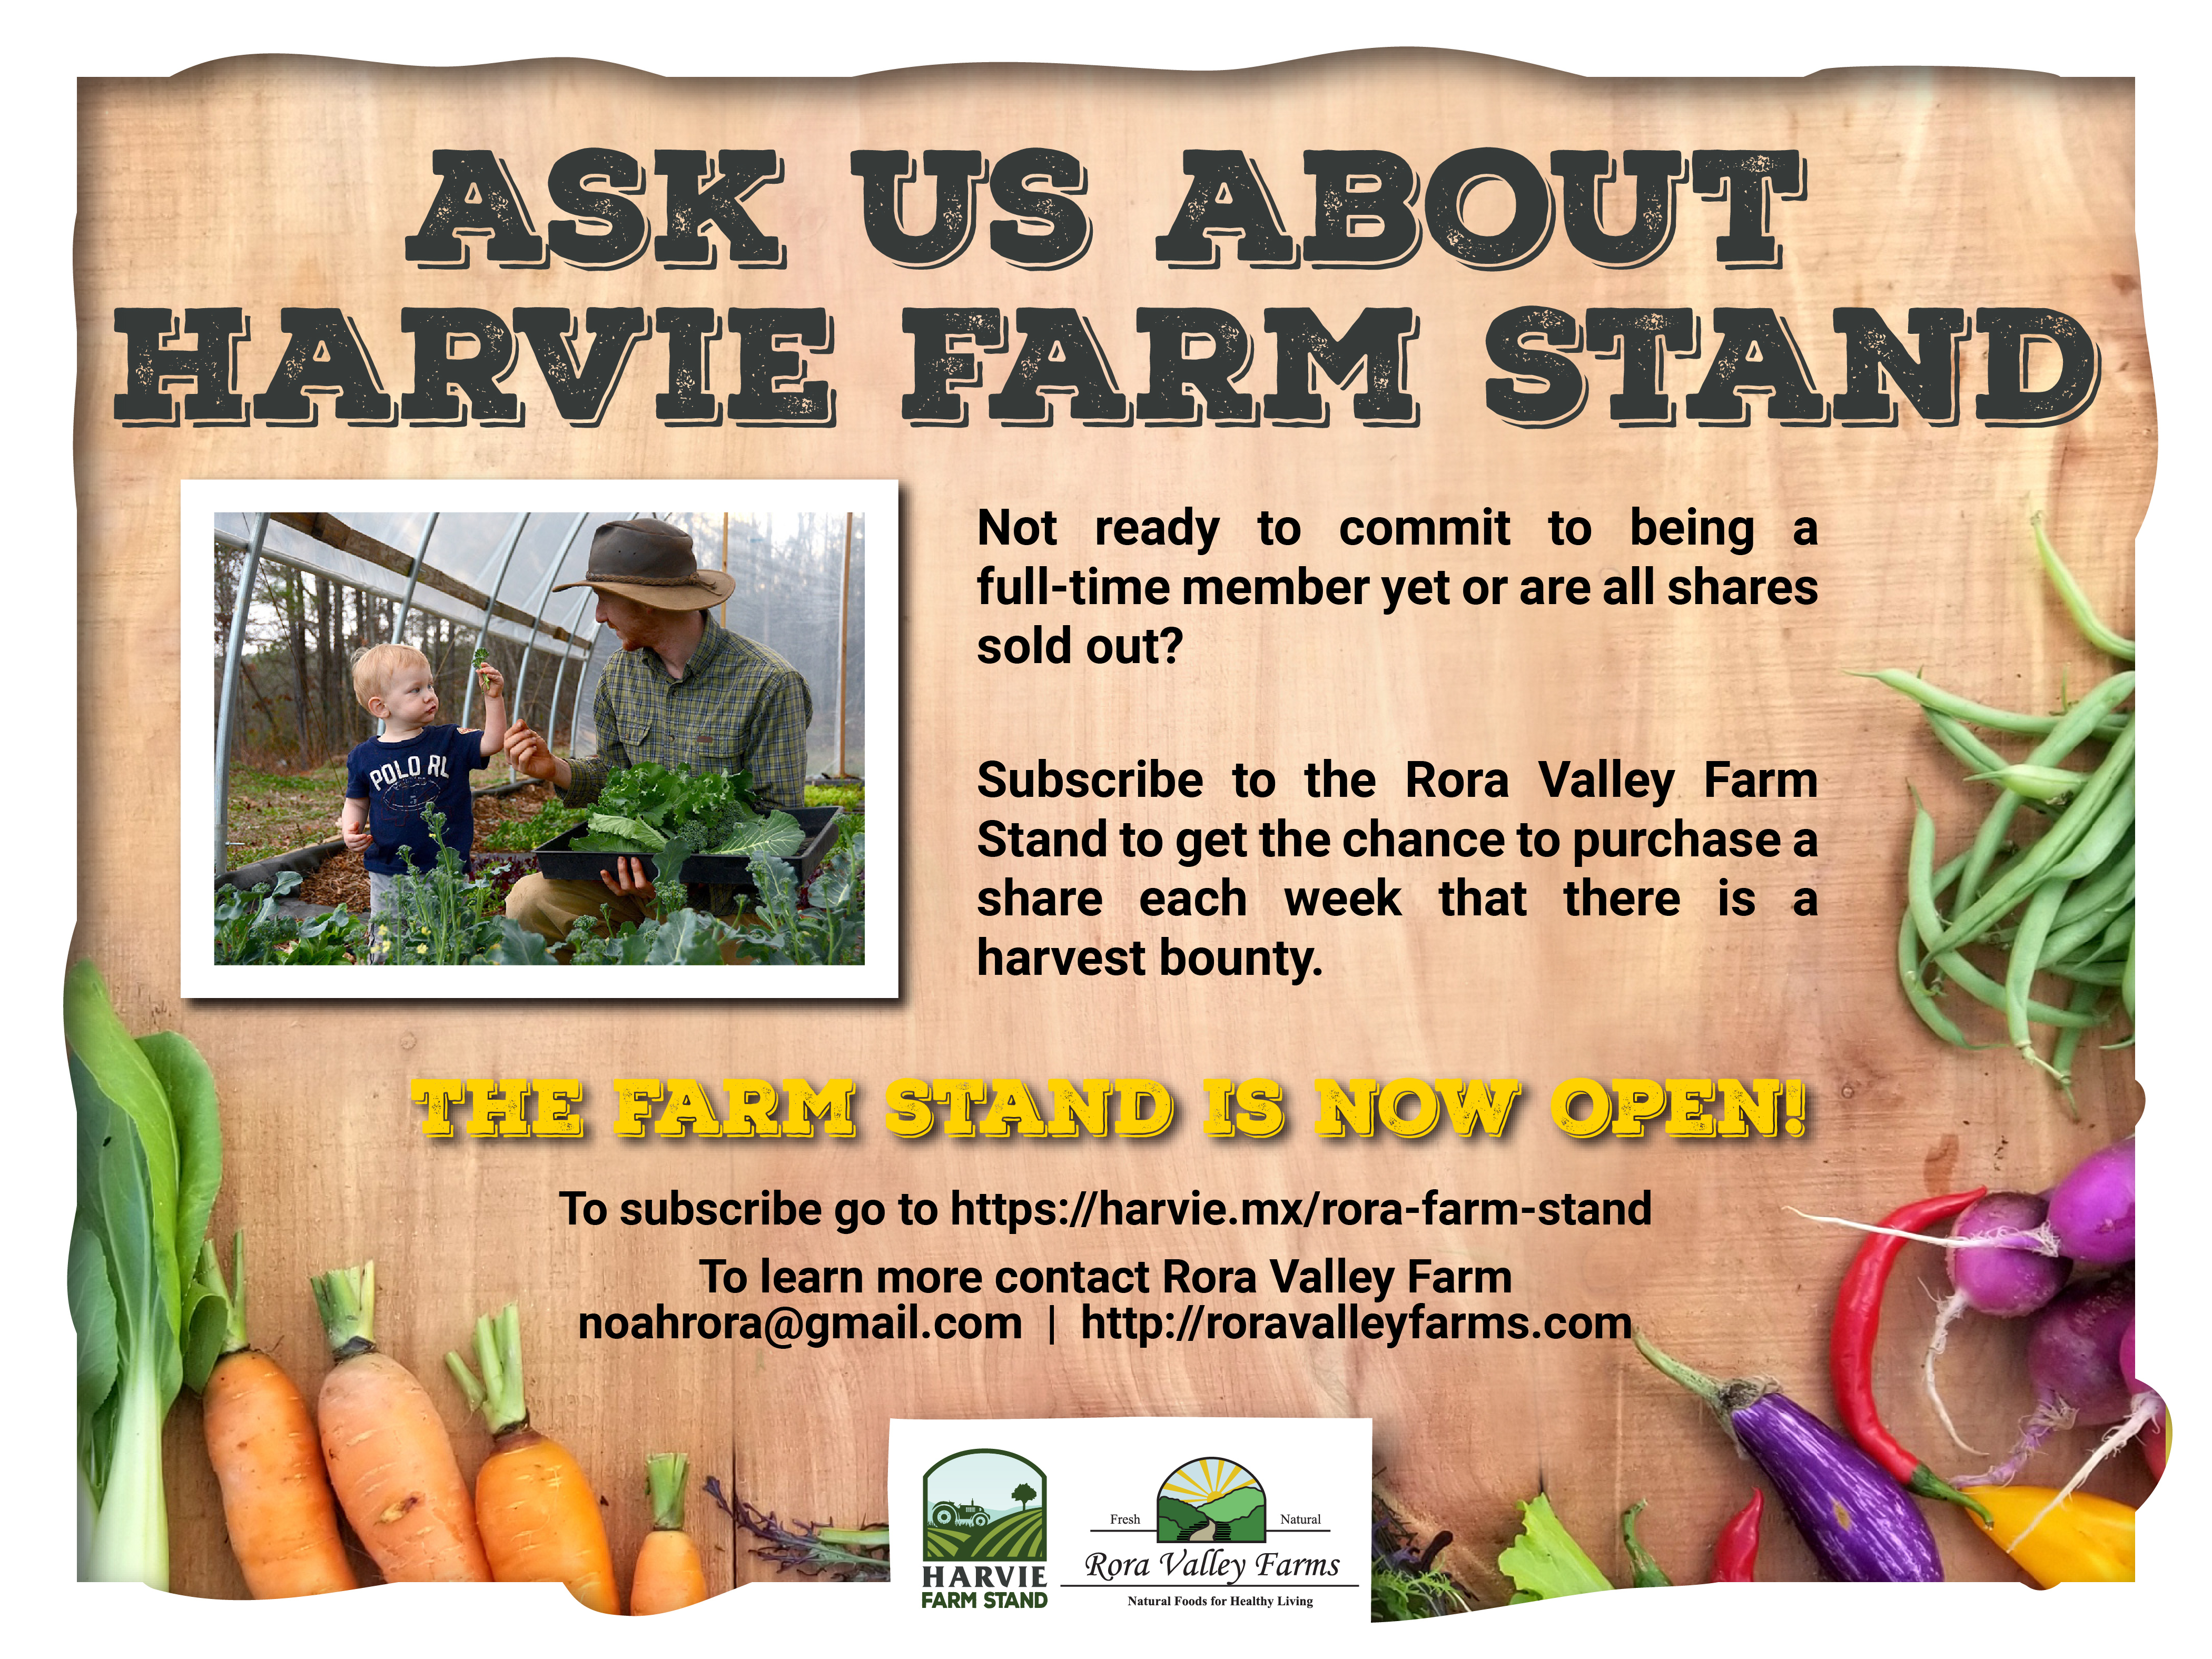 Sample_Poster_-_Ask_Us_About_Farm_Stand.jpg